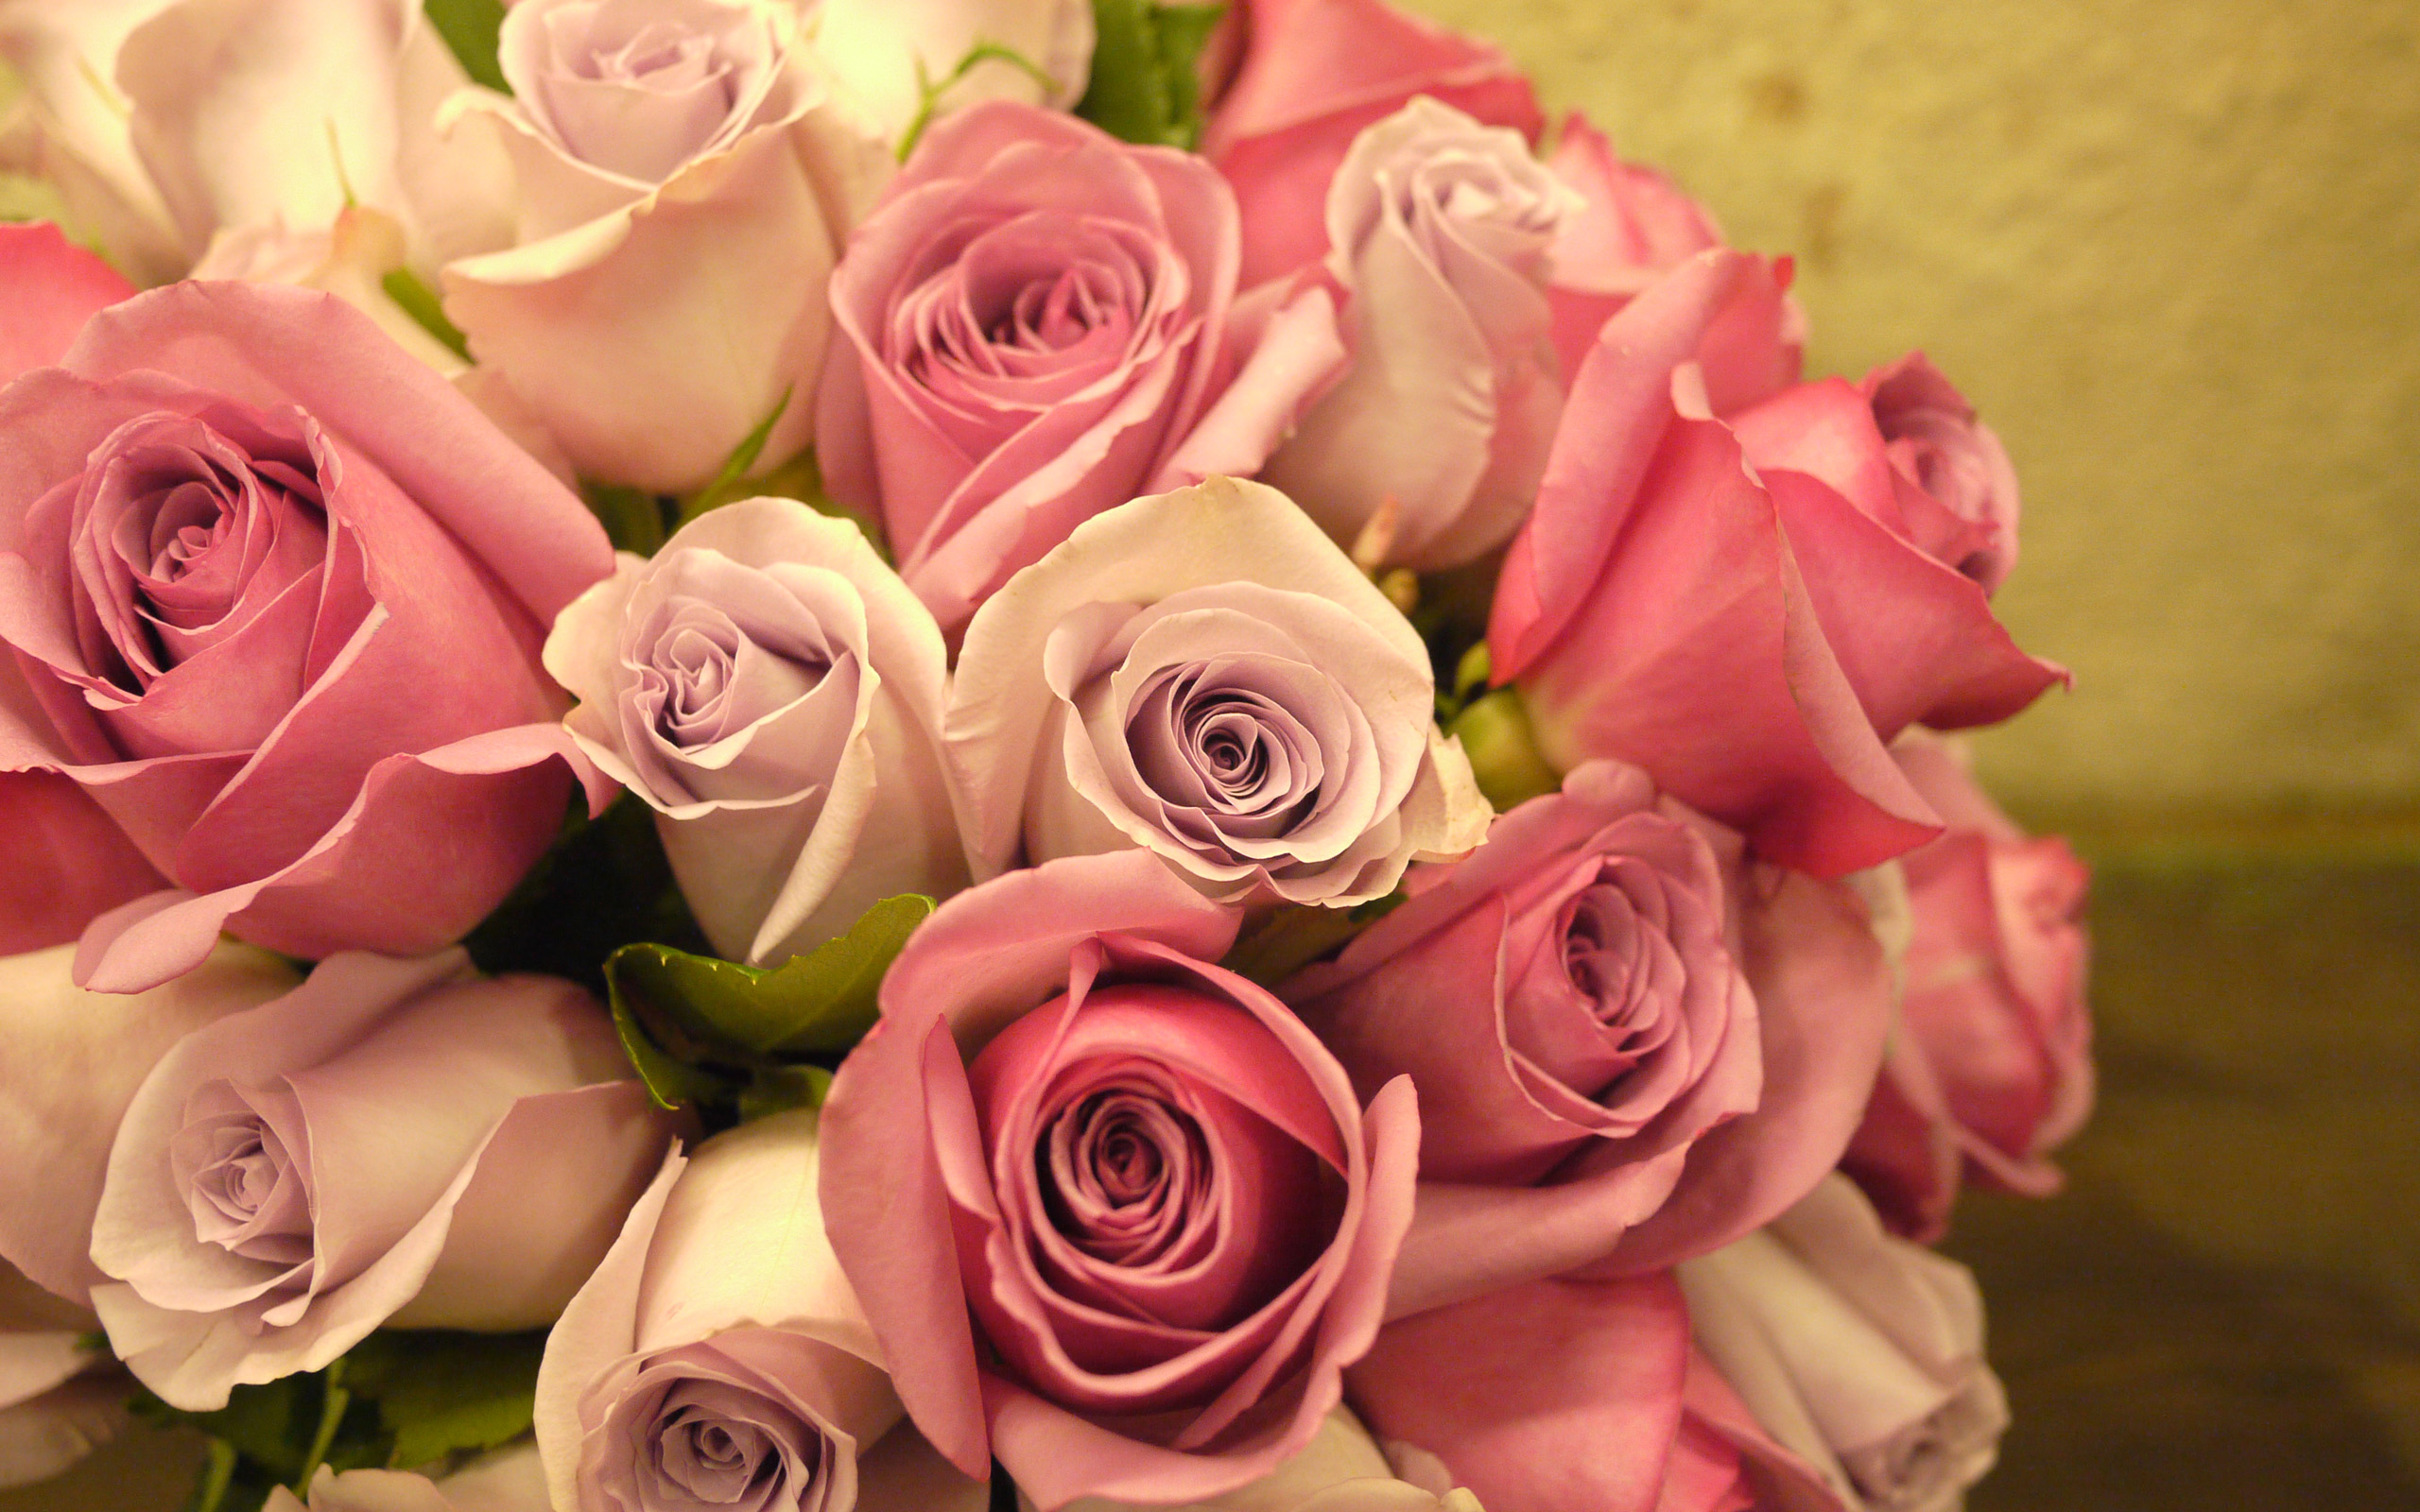 Roses scented